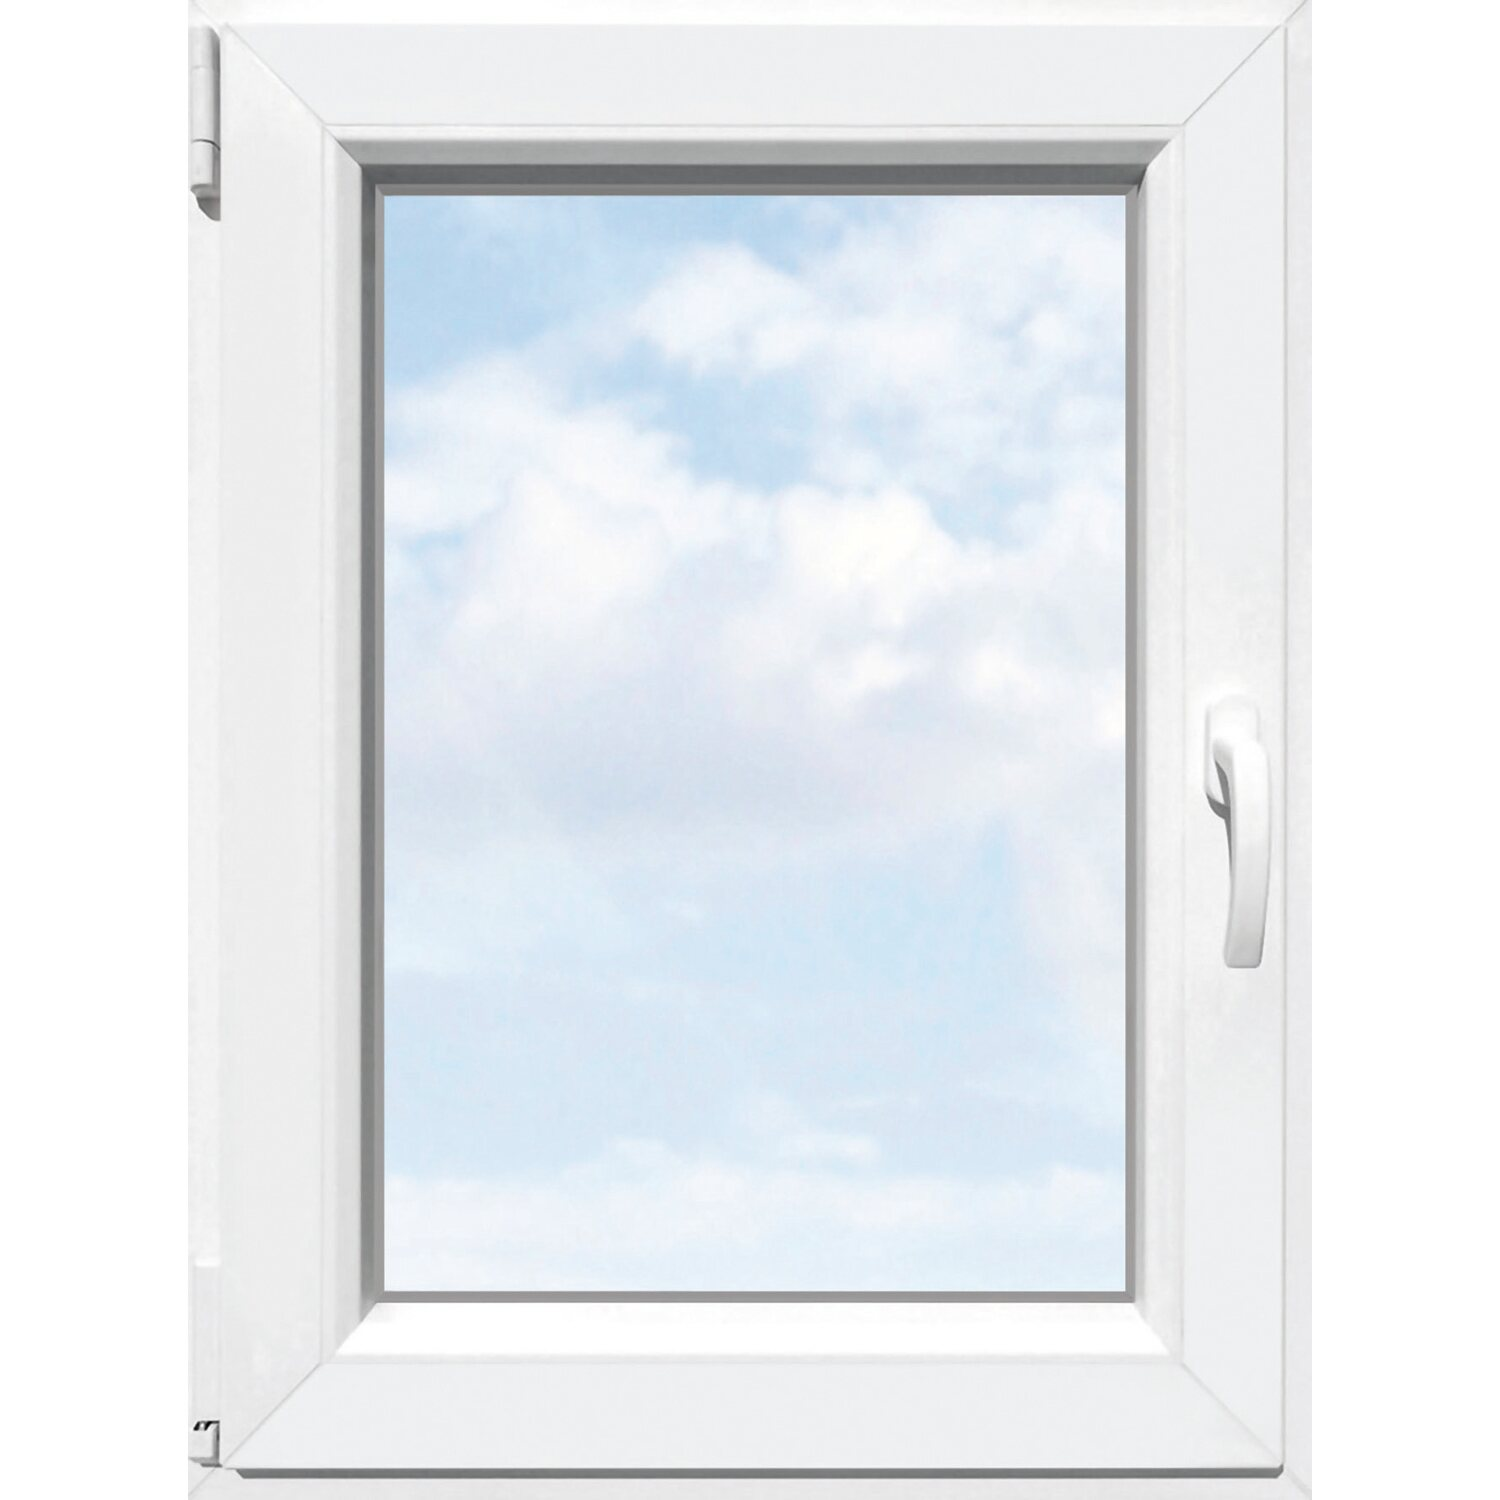 Super fenster 80 x 120 ar83 kyushucon for Fenster 80 x 60